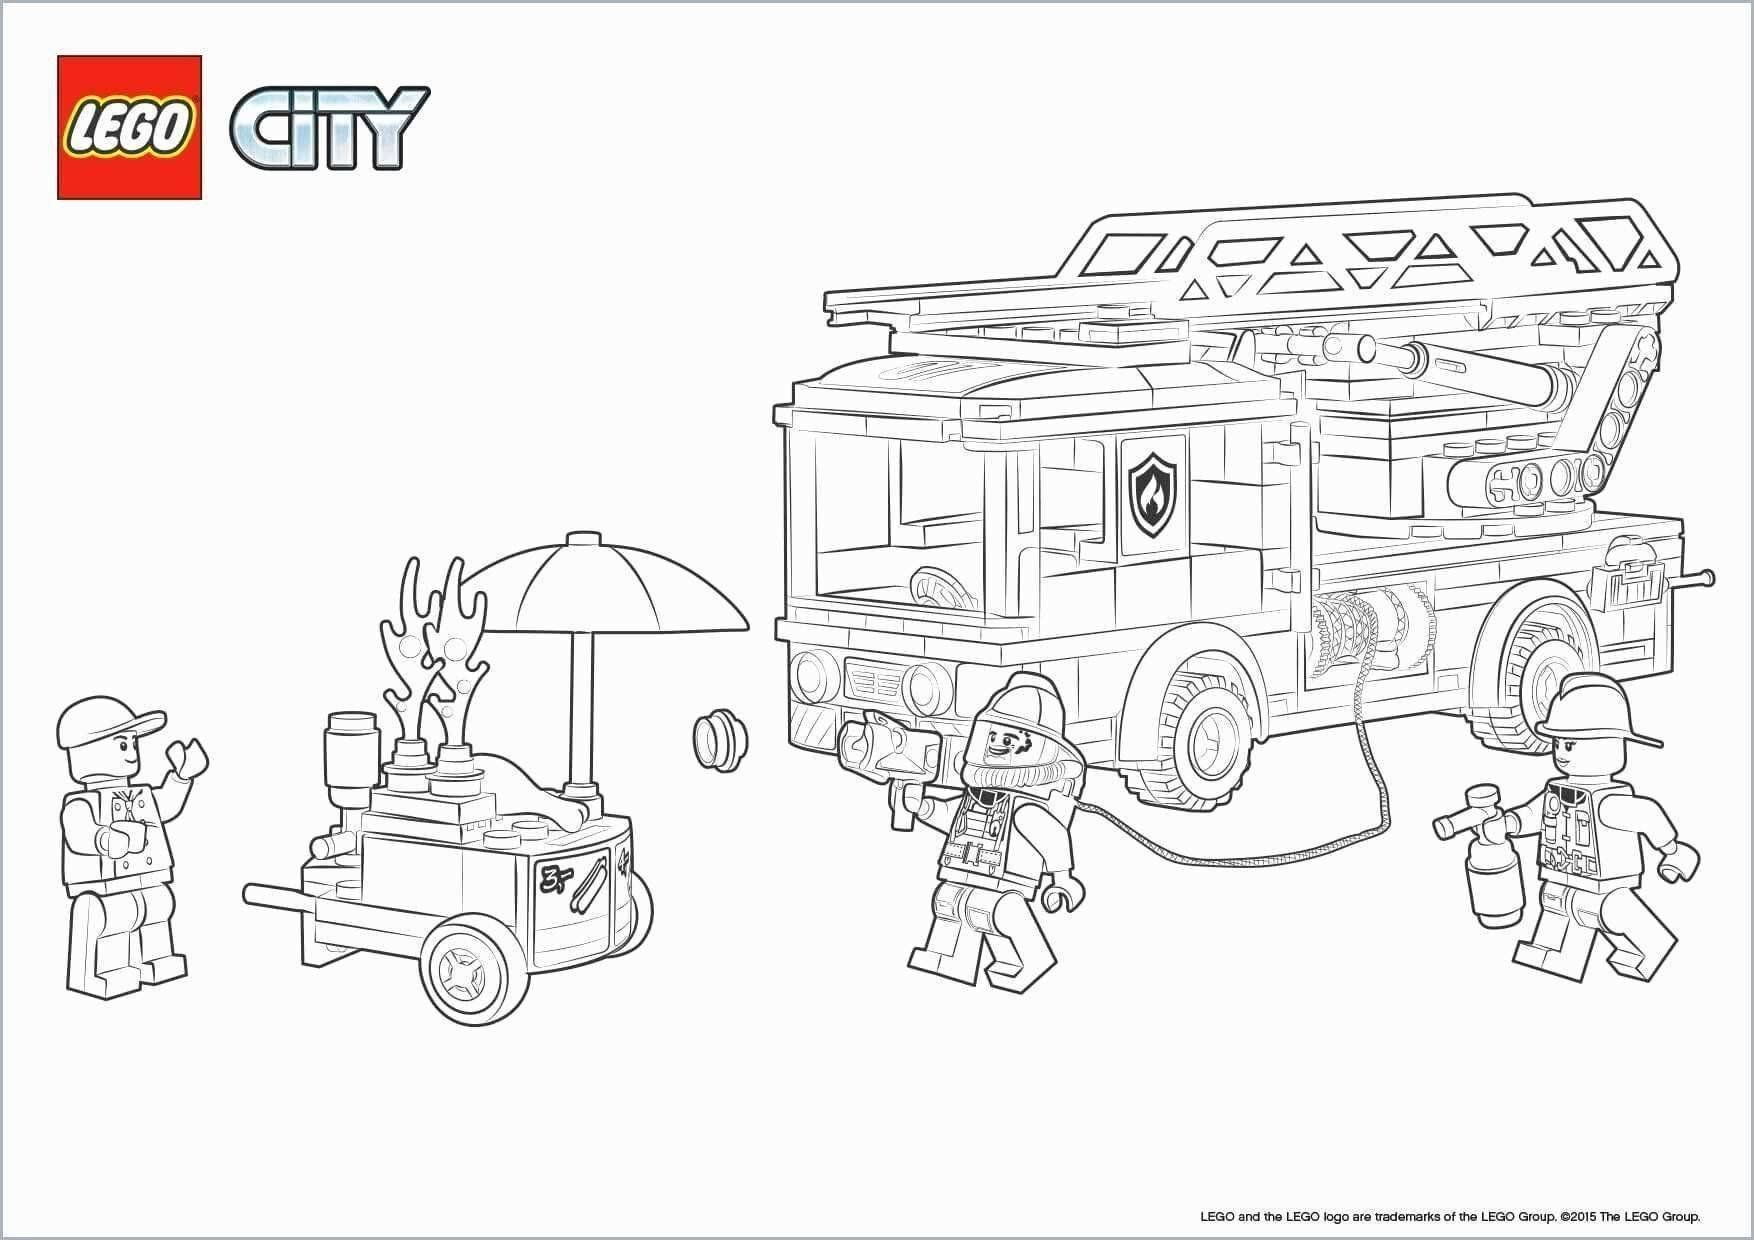 Lego City Coloring Pages Unique Lego City Coloring Pages In 2020 Truck Coloring Pages Coloring Pages Lego Coloring Pages